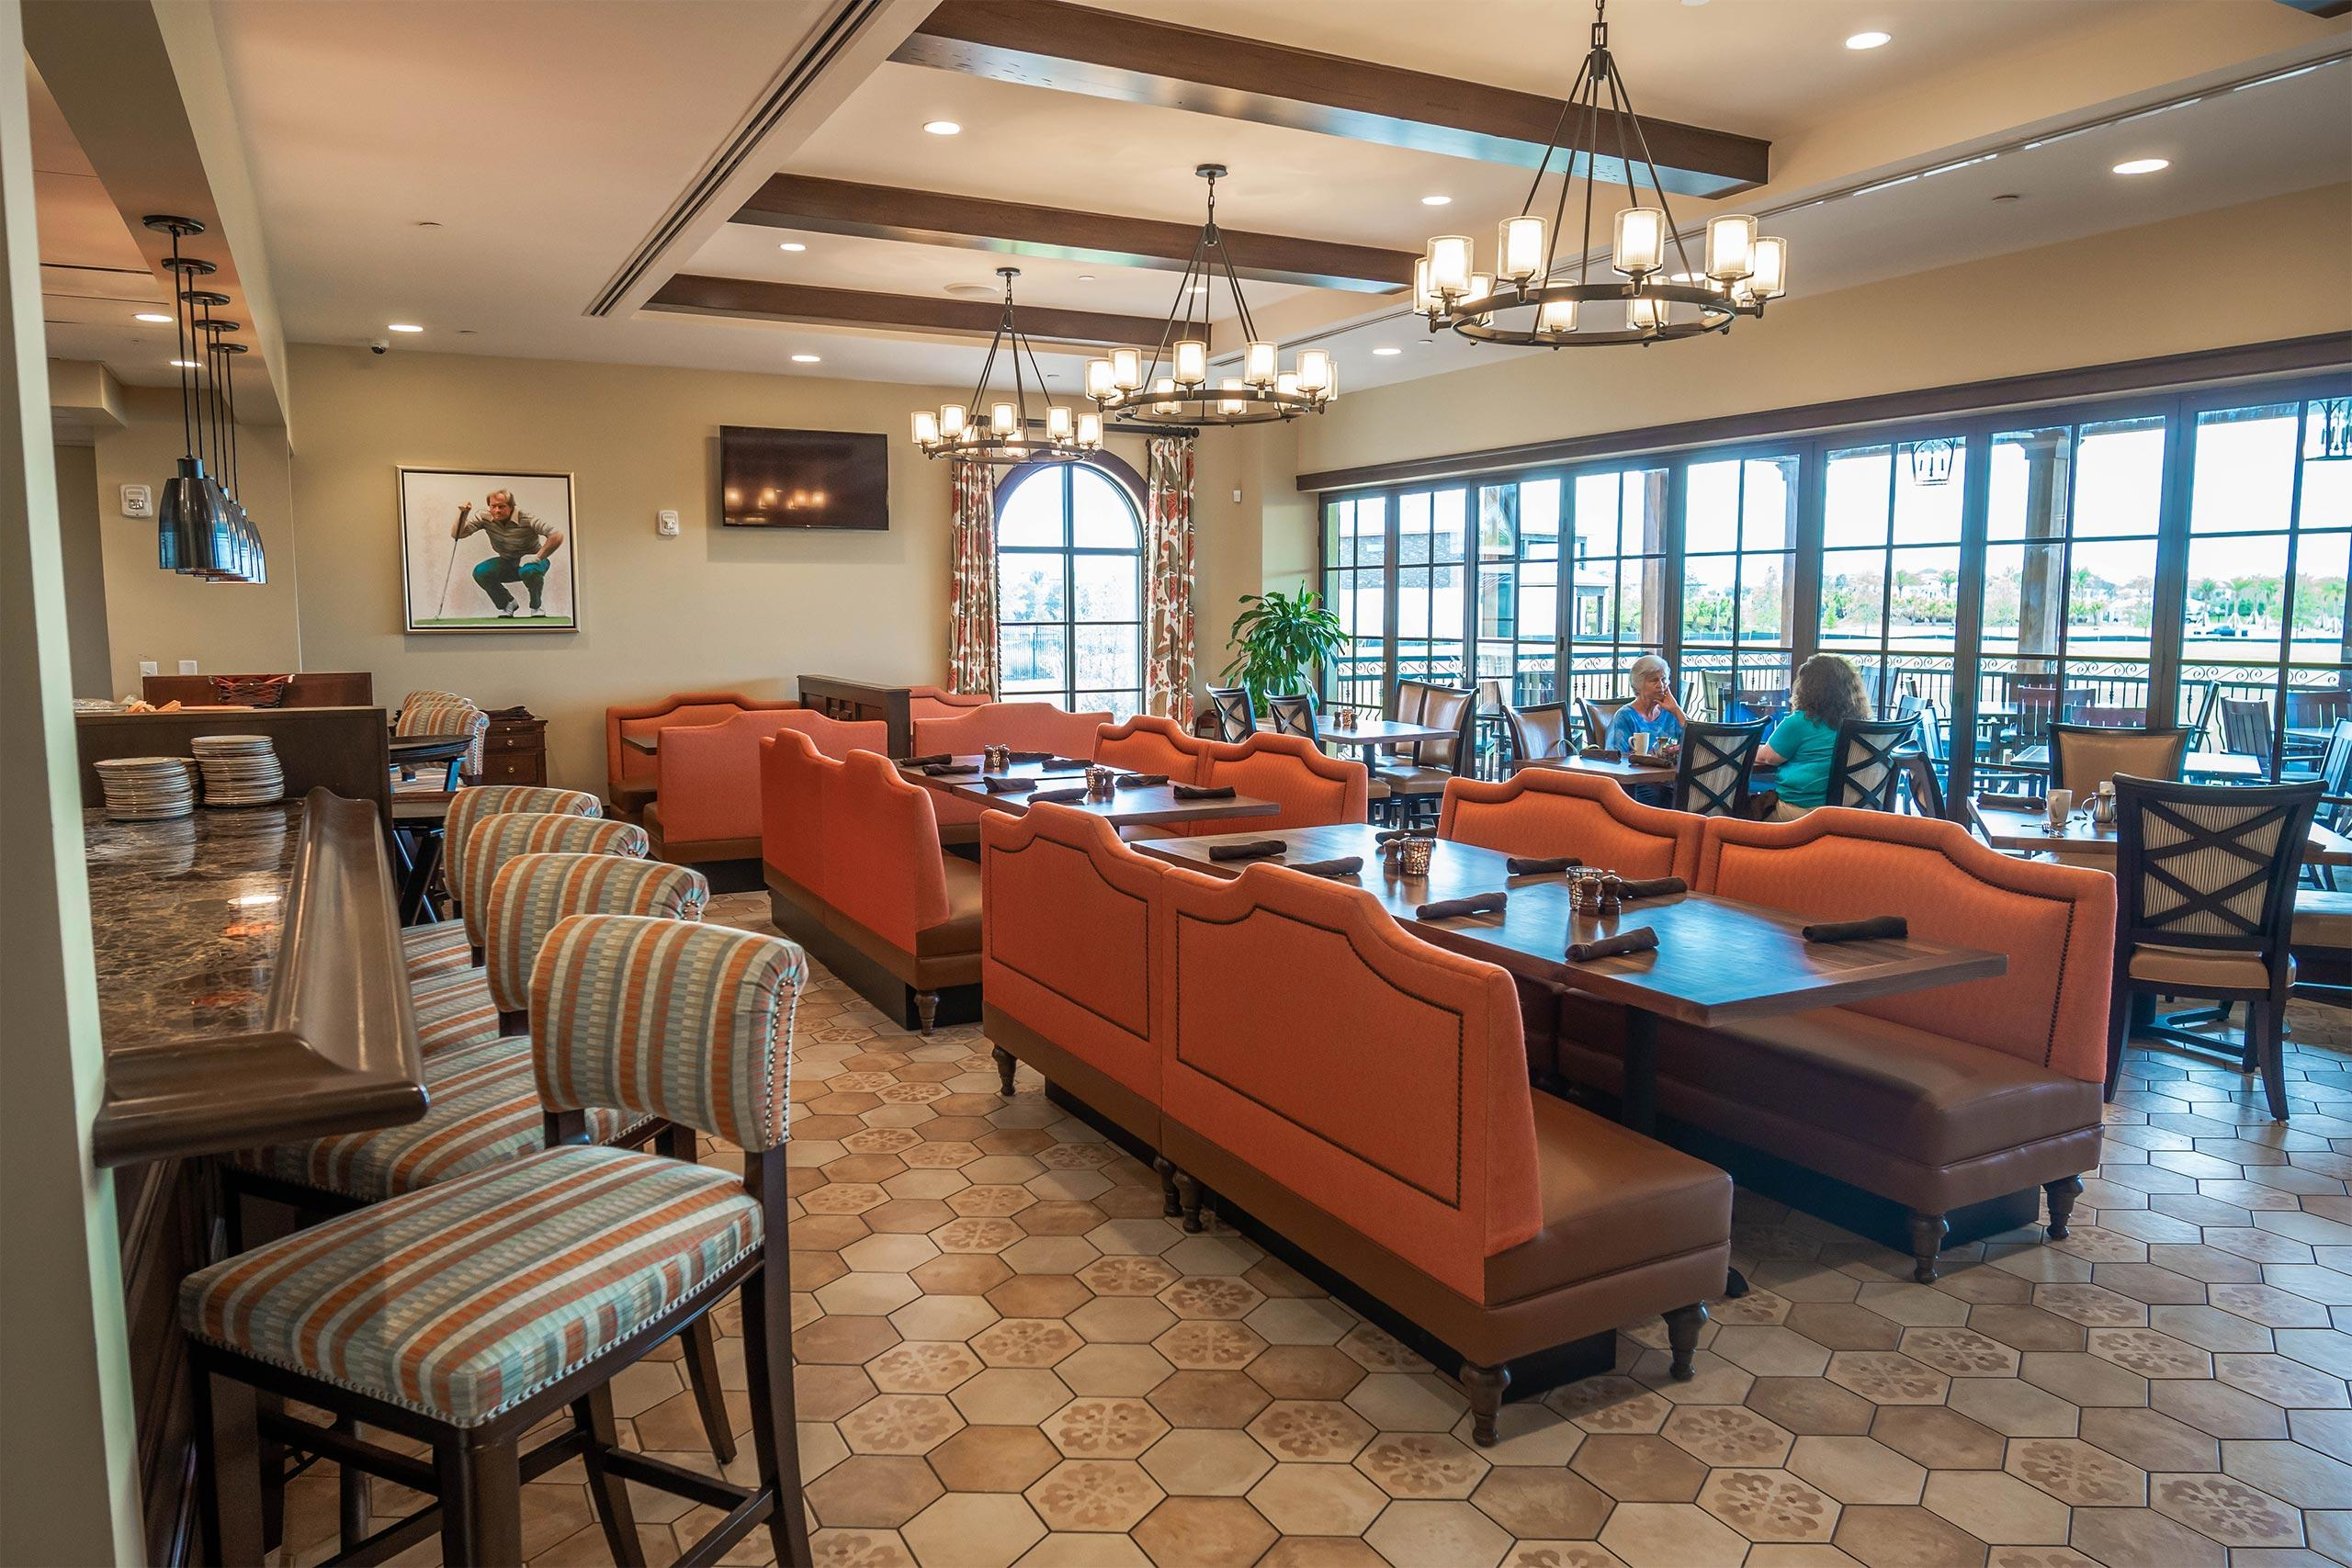 Traditions Restaurant at the Bear's Den Resort Orlando clubhouse.